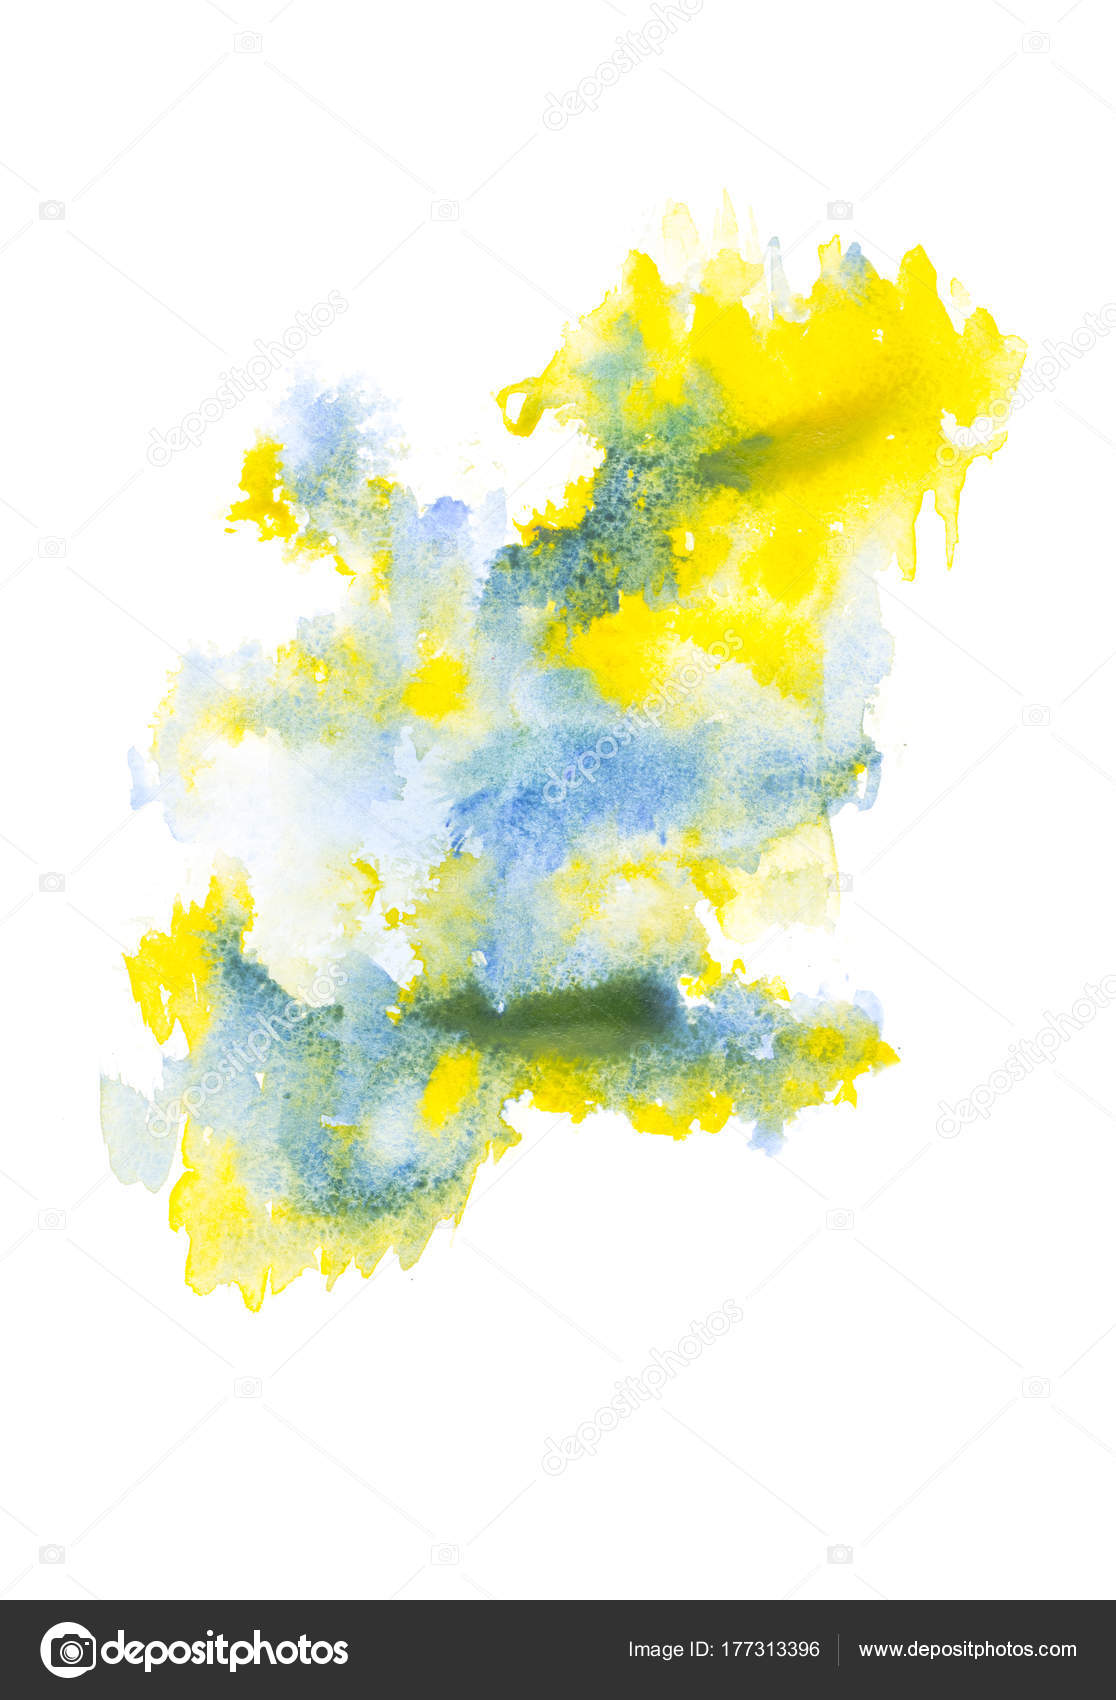 abstrait peinture bleu jaune taches peinture aquarelle sur blanc photographie vadimvasenin. Black Bedroom Furniture Sets. Home Design Ideas